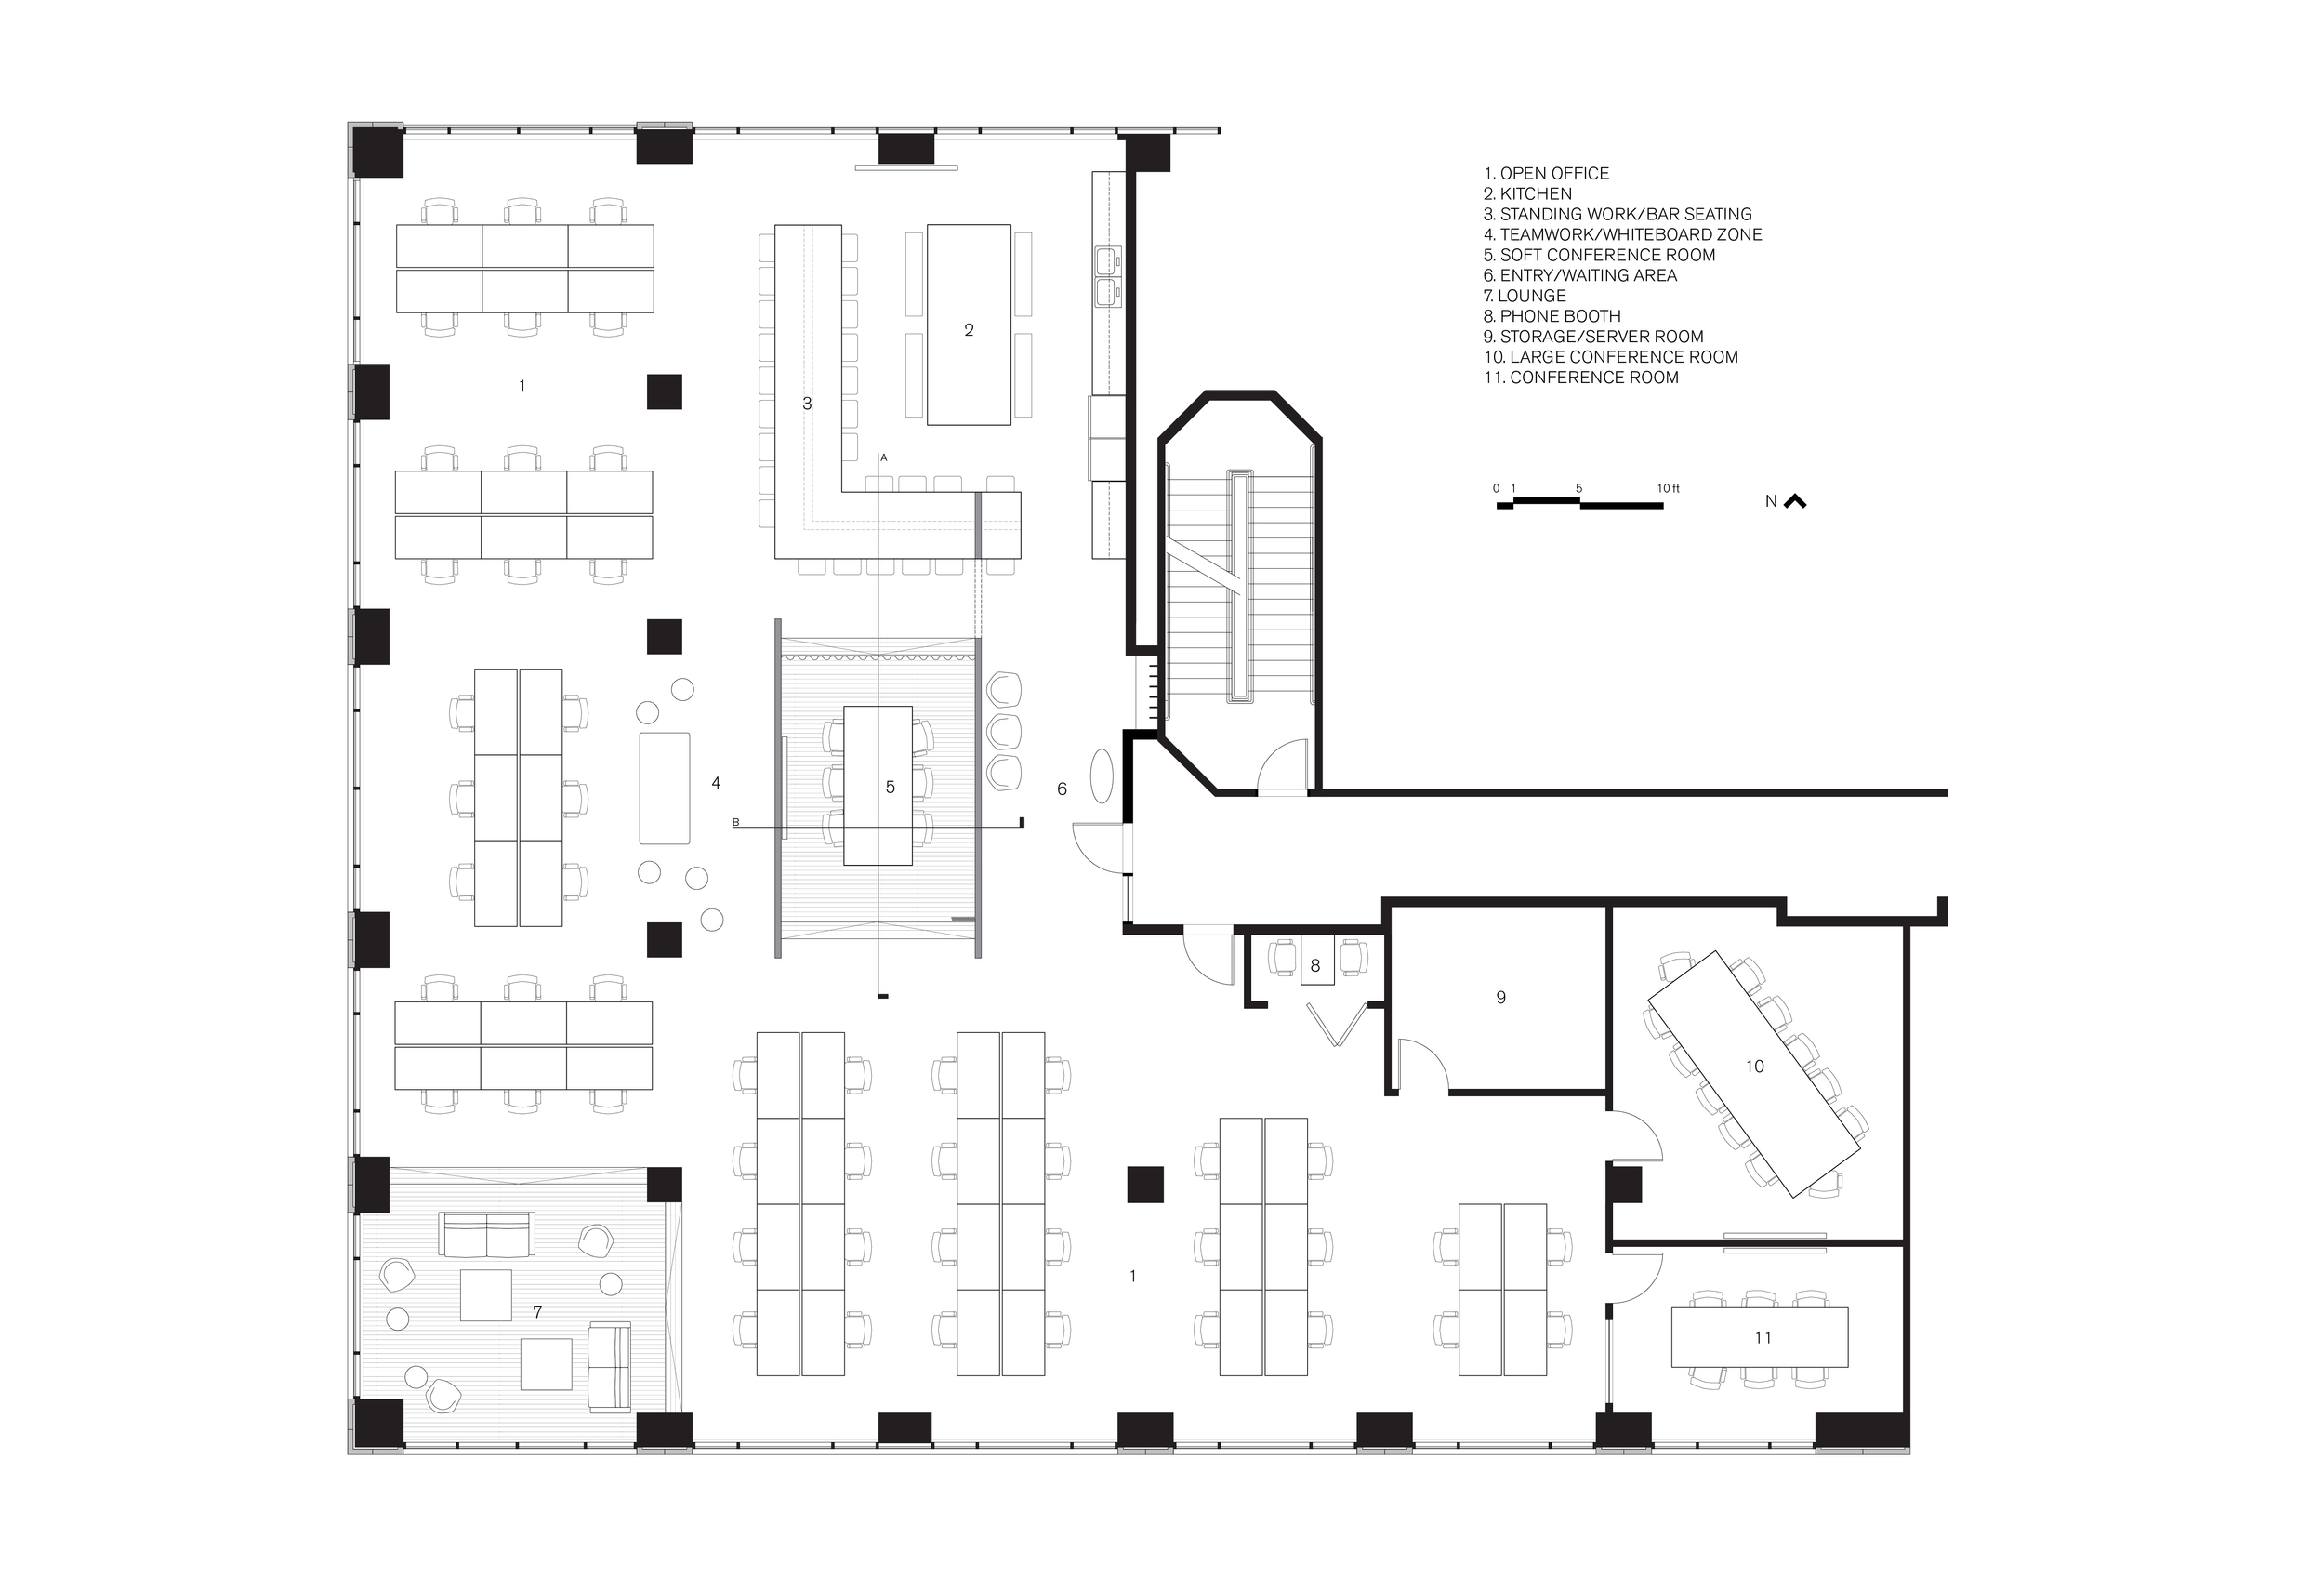 Deepfield Office Floor Plan